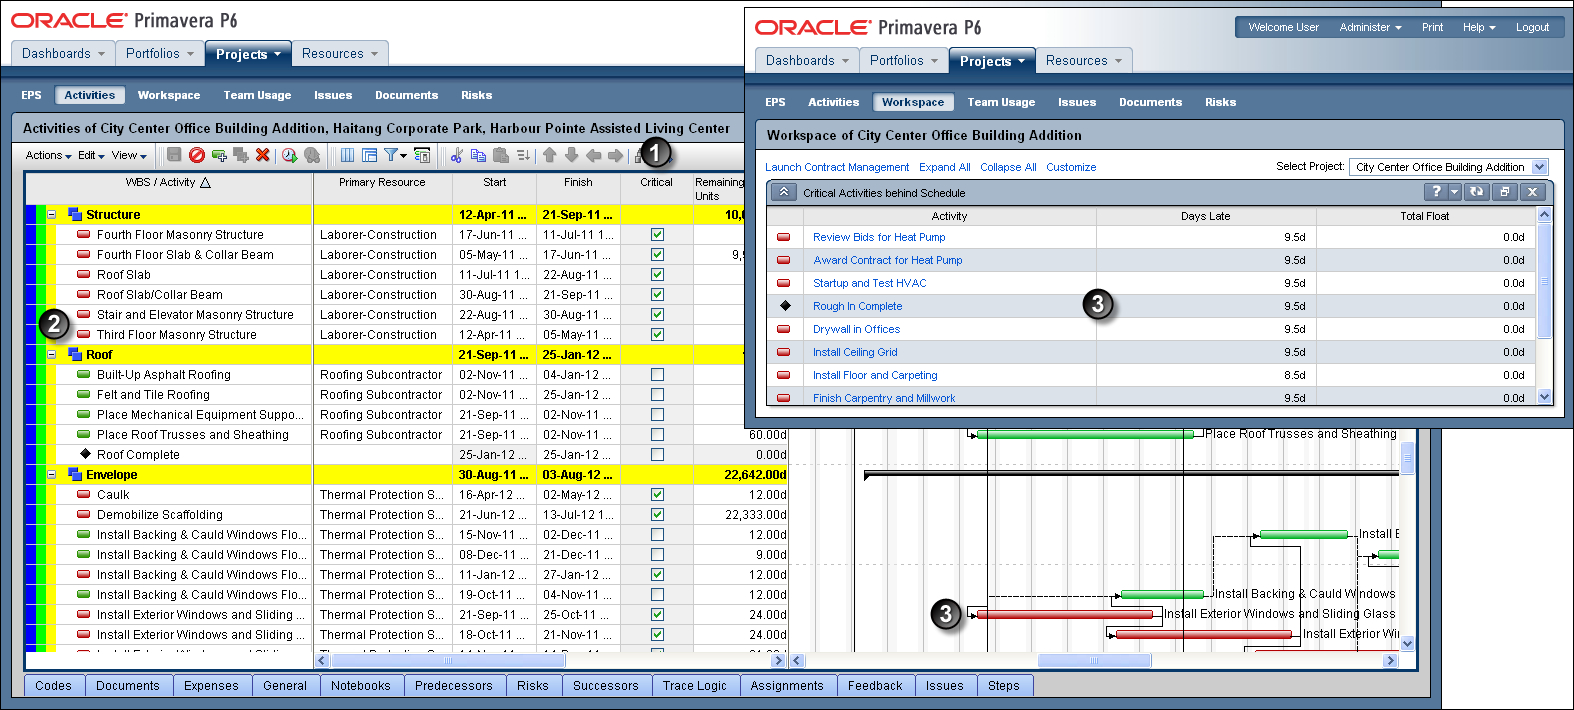 Oracle Capacity Planning And Sizing Spreadsheets Free Download Regarding Oracle Primavera P6 Eppm Release 8.3 Documentation Library